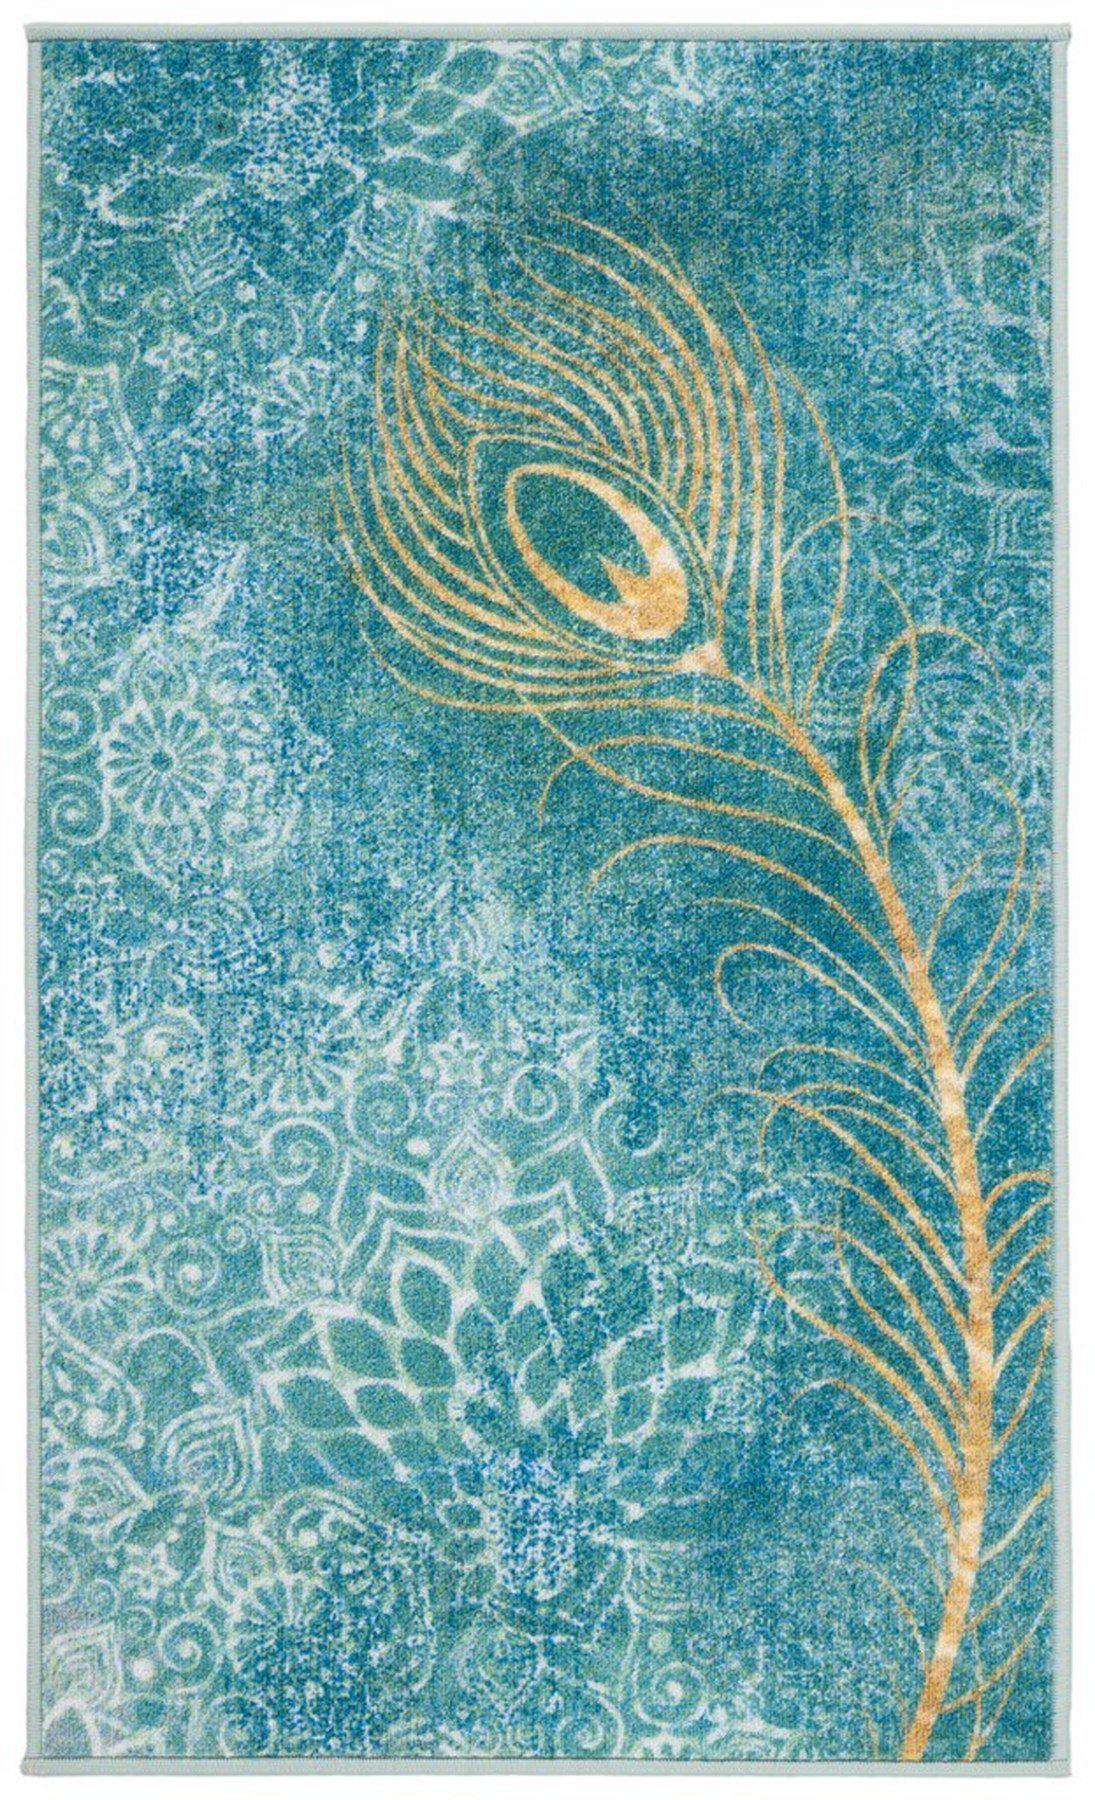 "Safavieh Collection Inspired by Disney's Live Action Film Aladdin - Dream Rug, Turquoise / Gold-Area Rug-Safavieh-2' 3"" X 3' 9""-The Rug Truck"